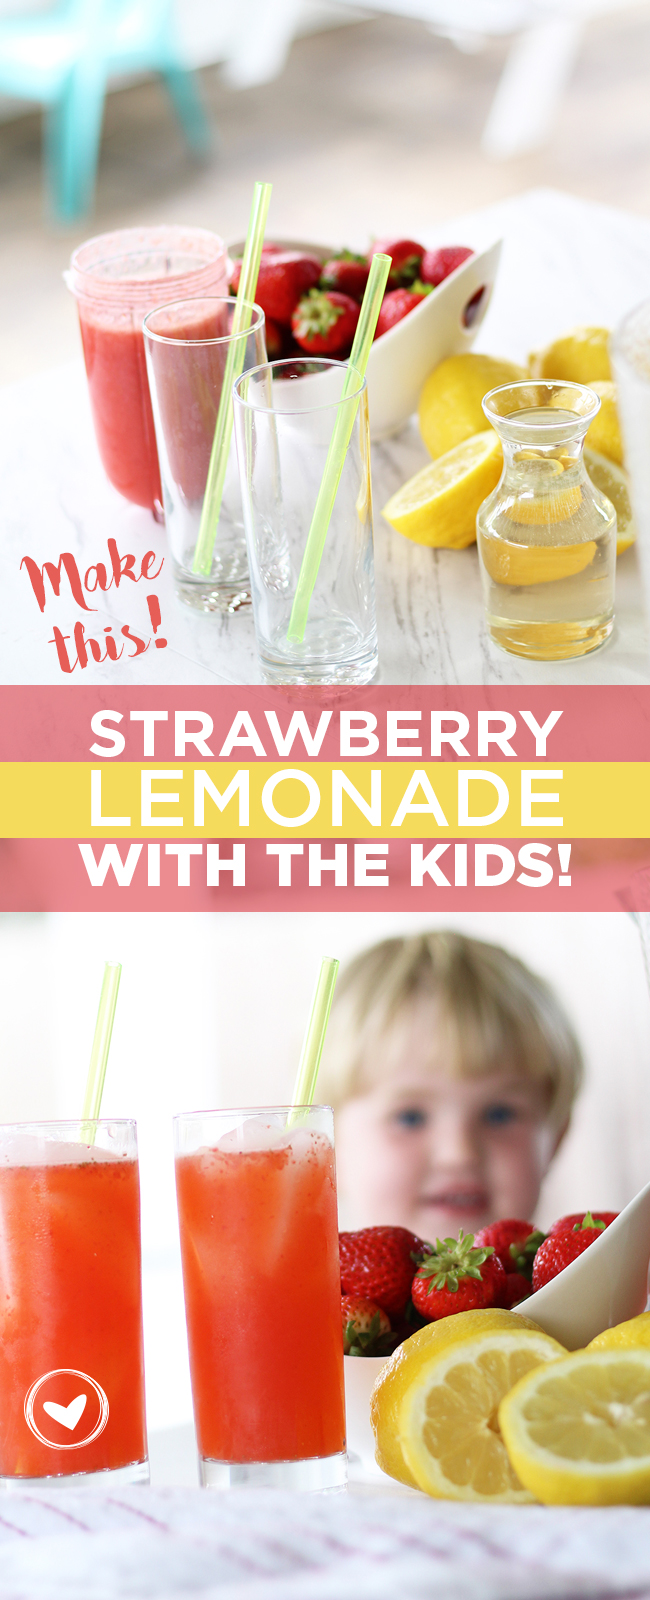 Make this! strawberry lemonade with the kids